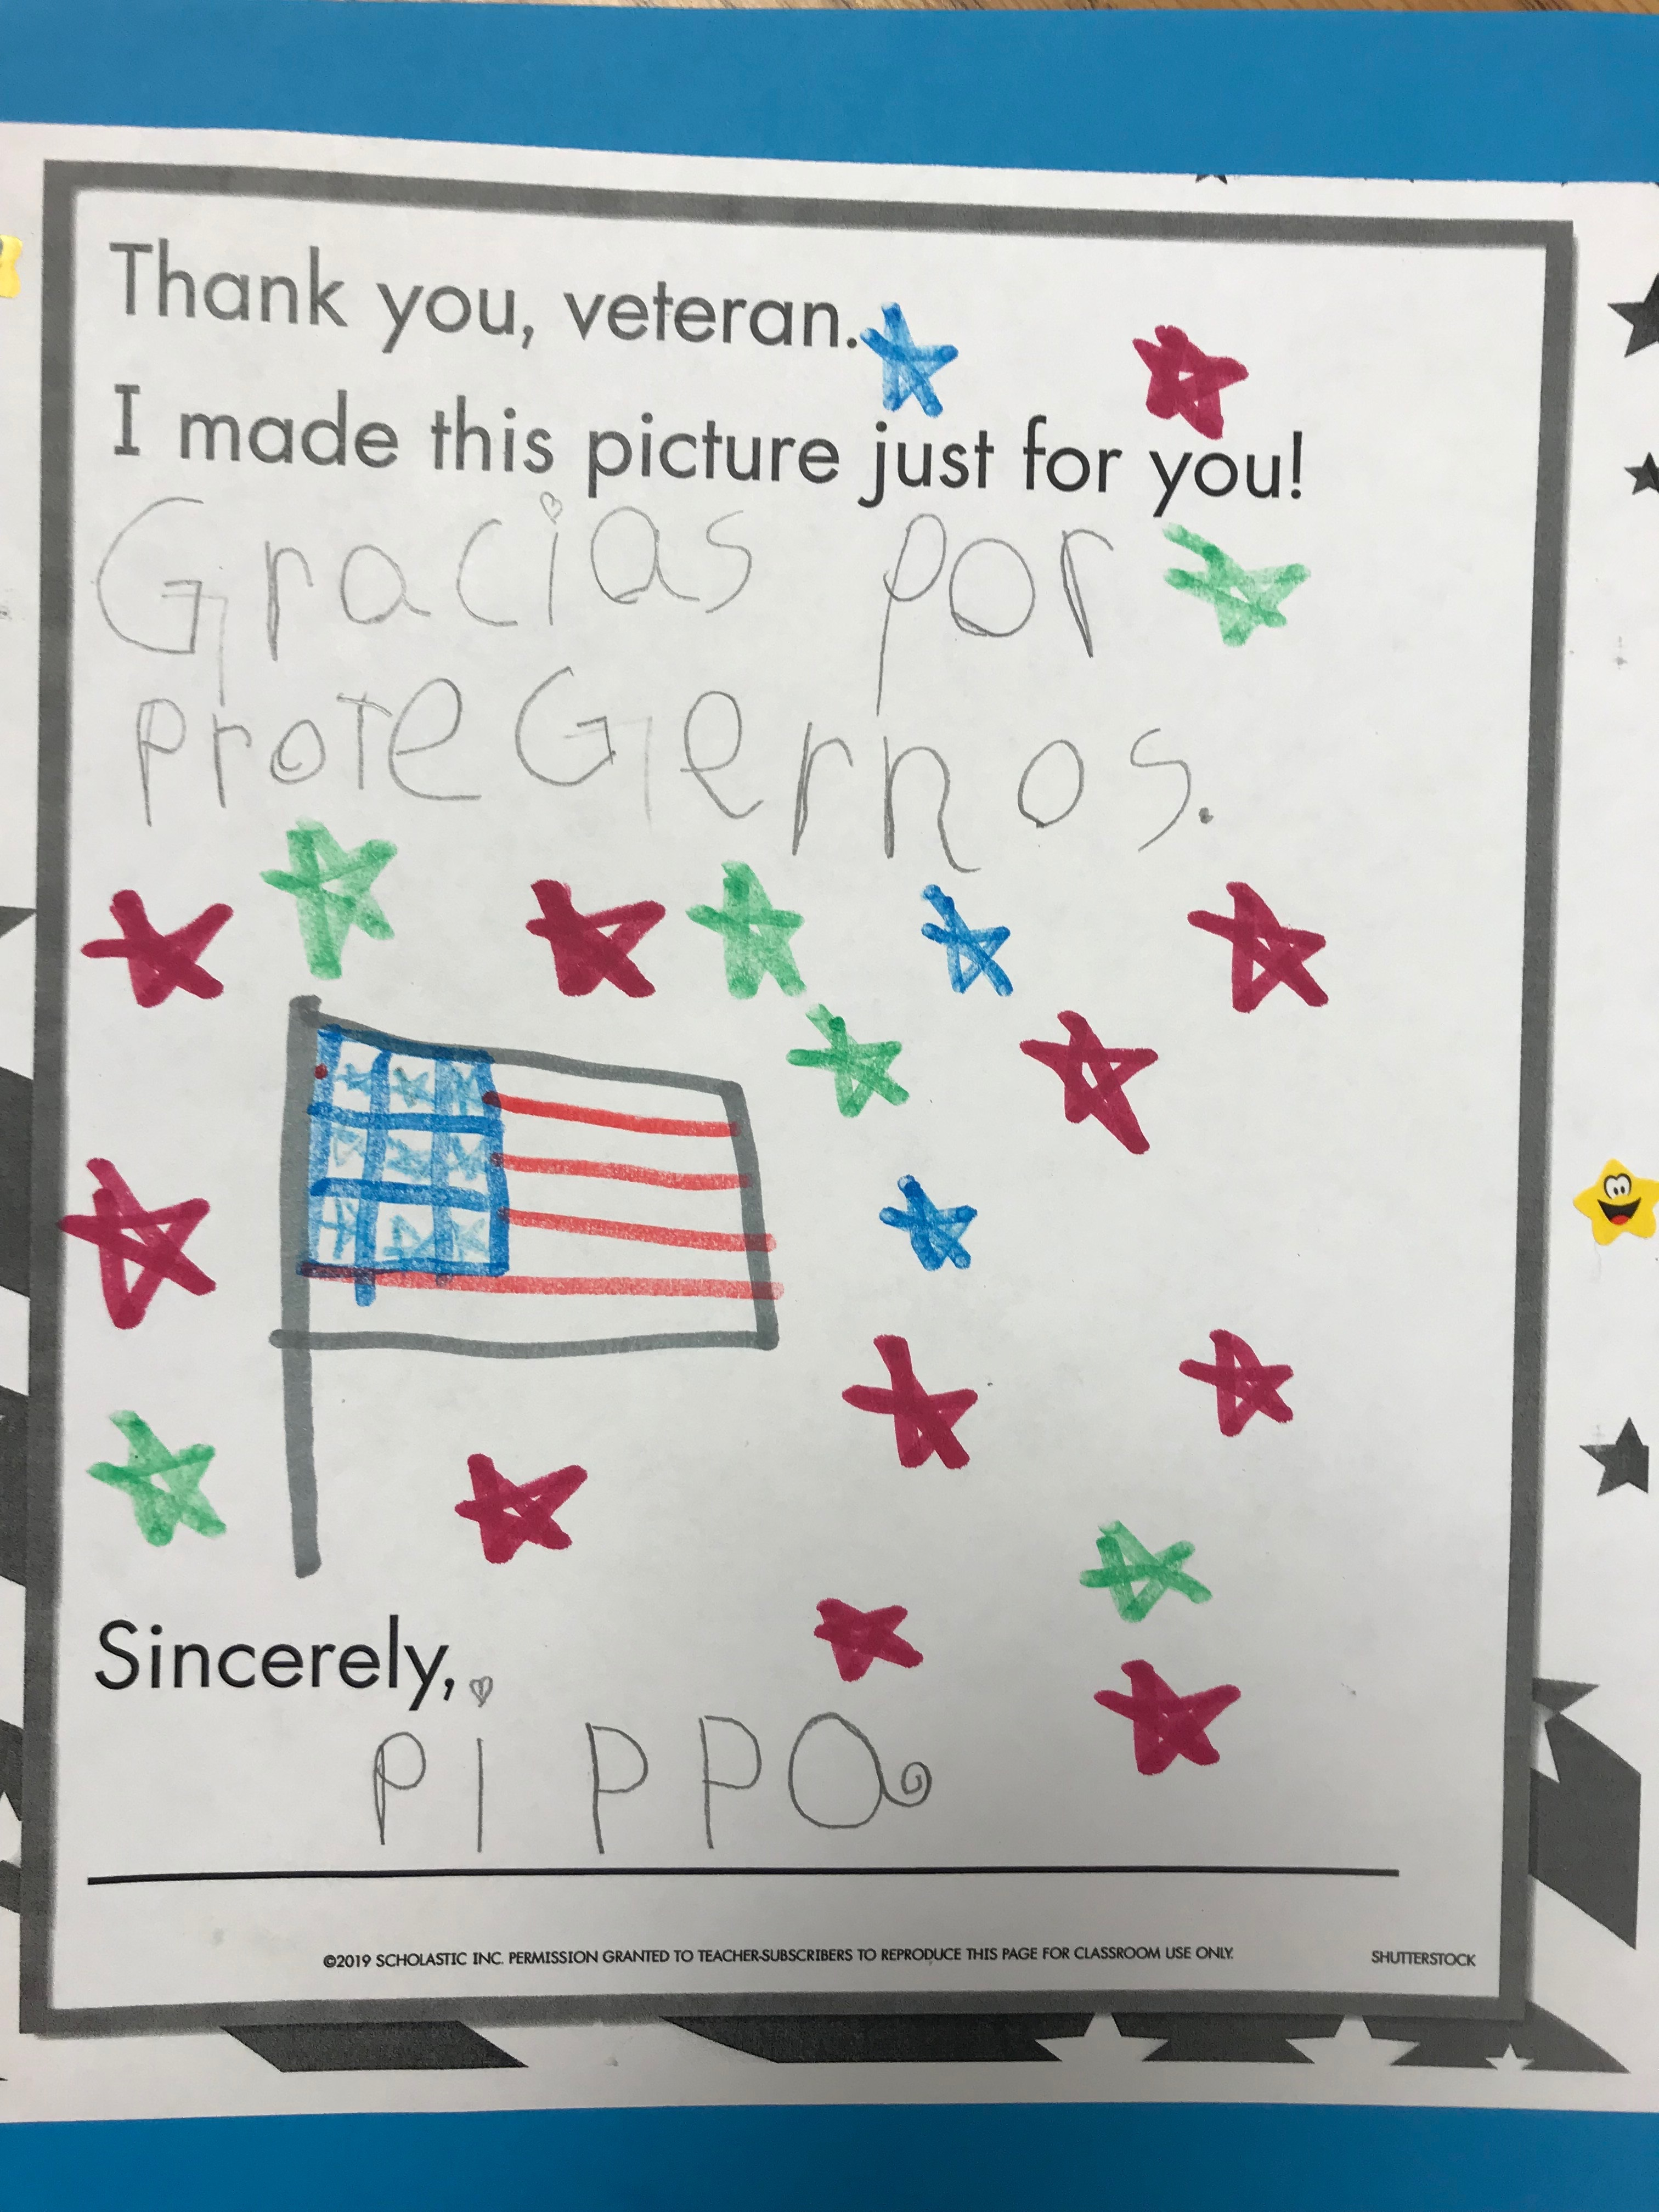 Veterans Day picture drawn by students.